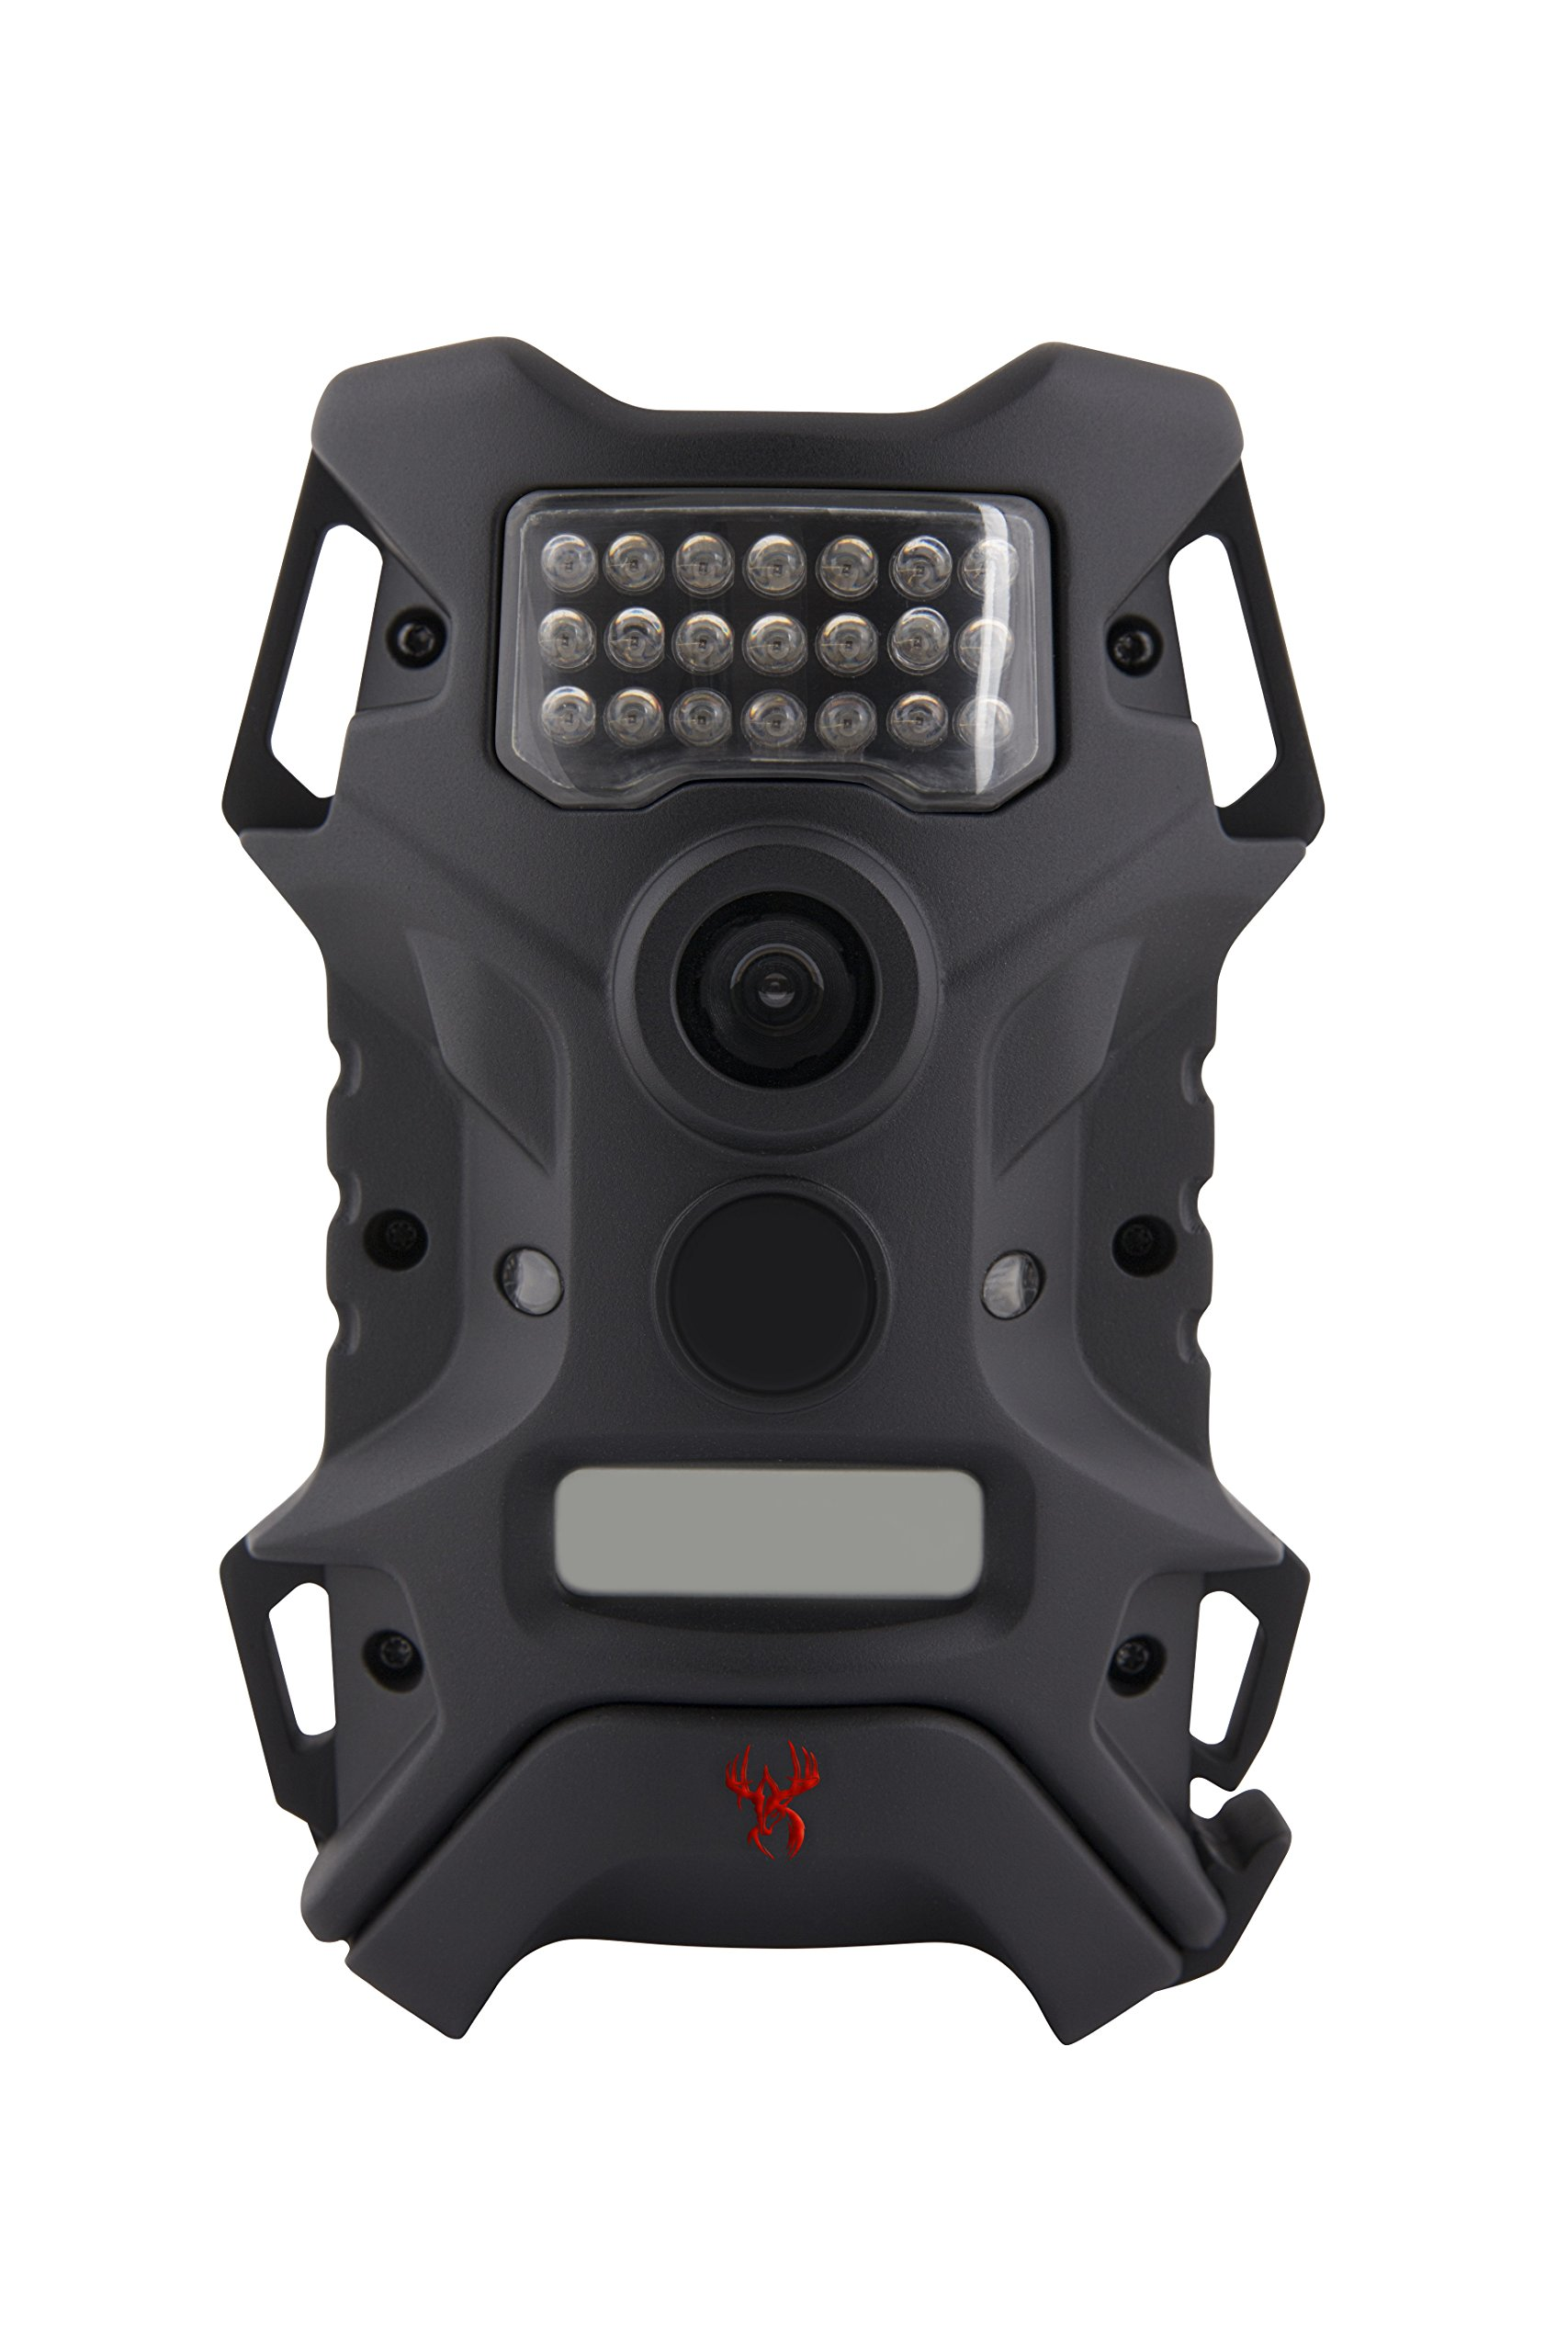 Wild Game Innovations TX10i1-8 Terra Extreme 10 IR Black Camera, 55ft Illumination Range, Under 1 Sec Trigger Speed by Wildgame Innovations